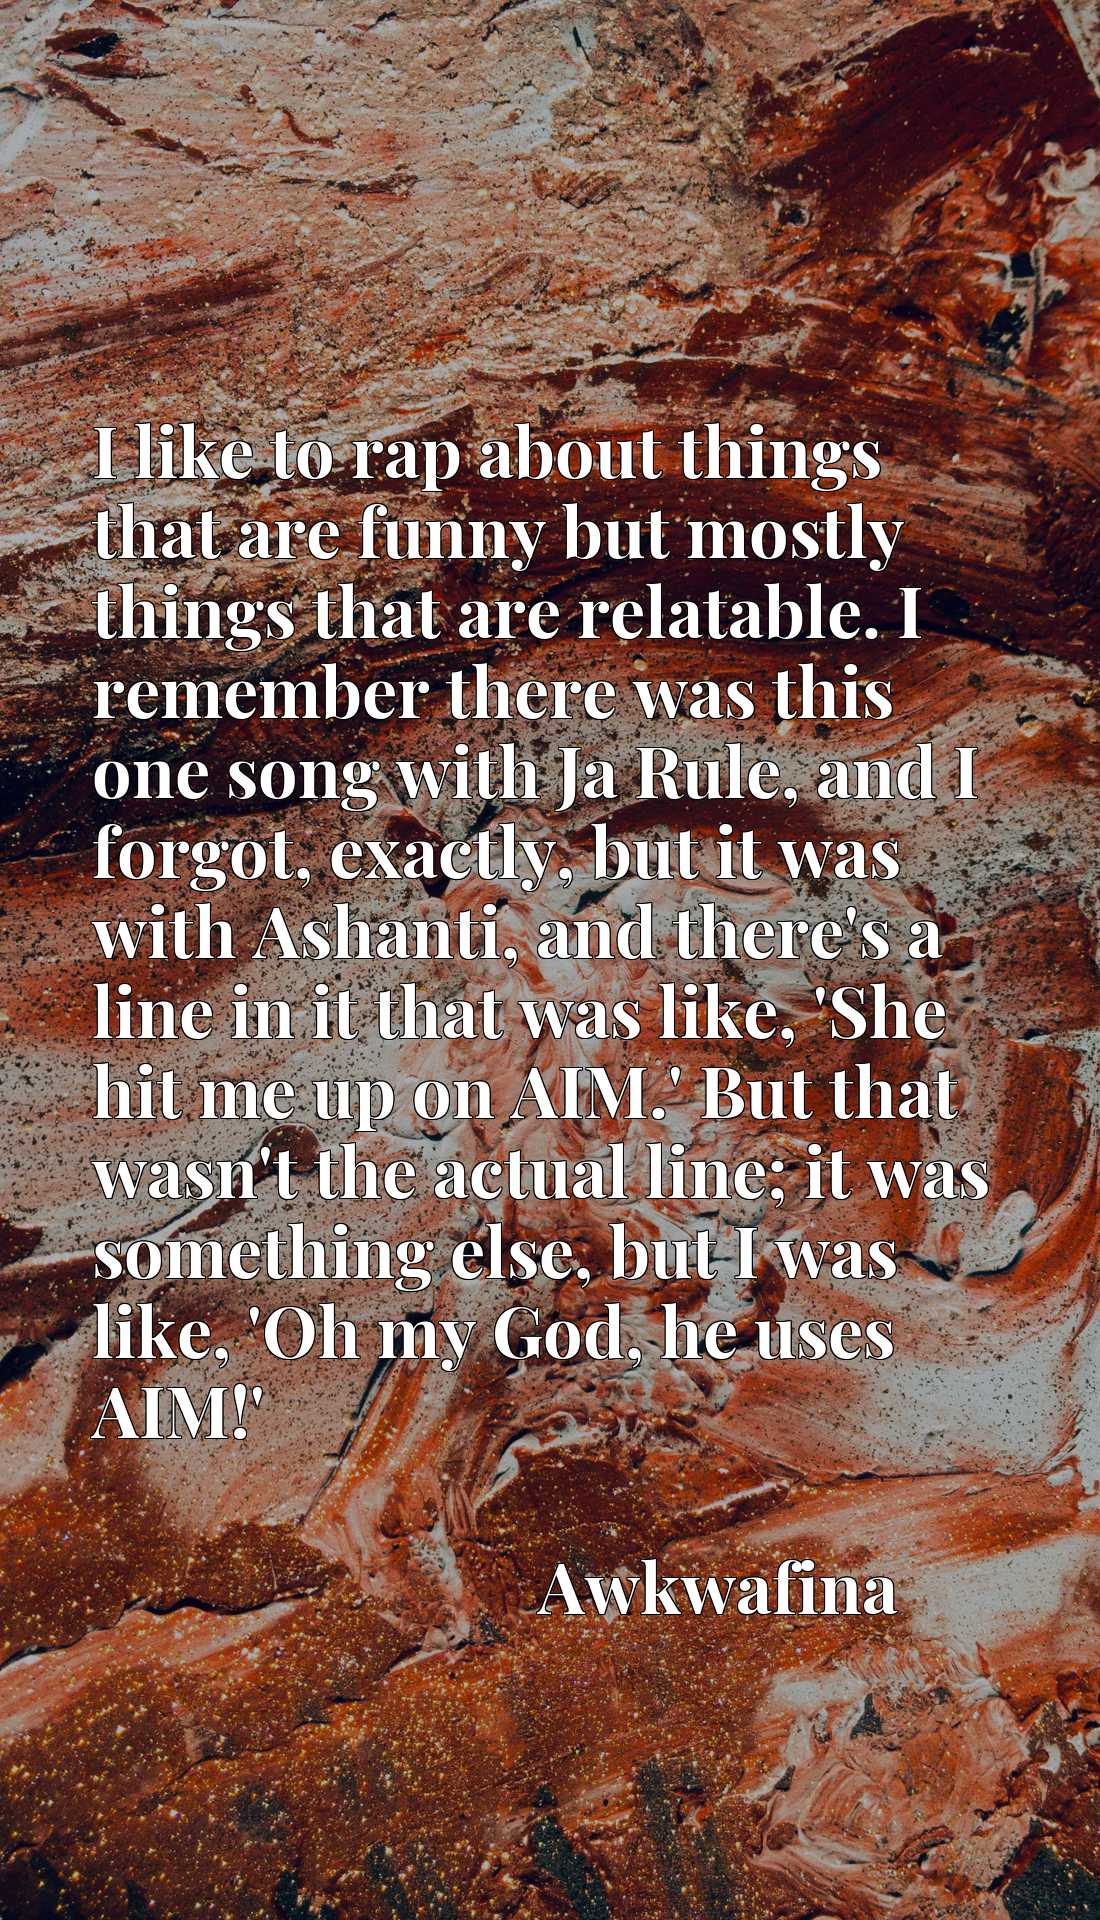 I like to rap about things that are funny but mostly things that are relatable. I remember there was this one song with Ja Rule, and I forgot, exactly, but it was with Ashanti, and there's a line in it that was like, 'She hit me up on AIM.' But that wasn't the actual line; it was something else, but I was like, 'Oh my God, he uses AIM!'